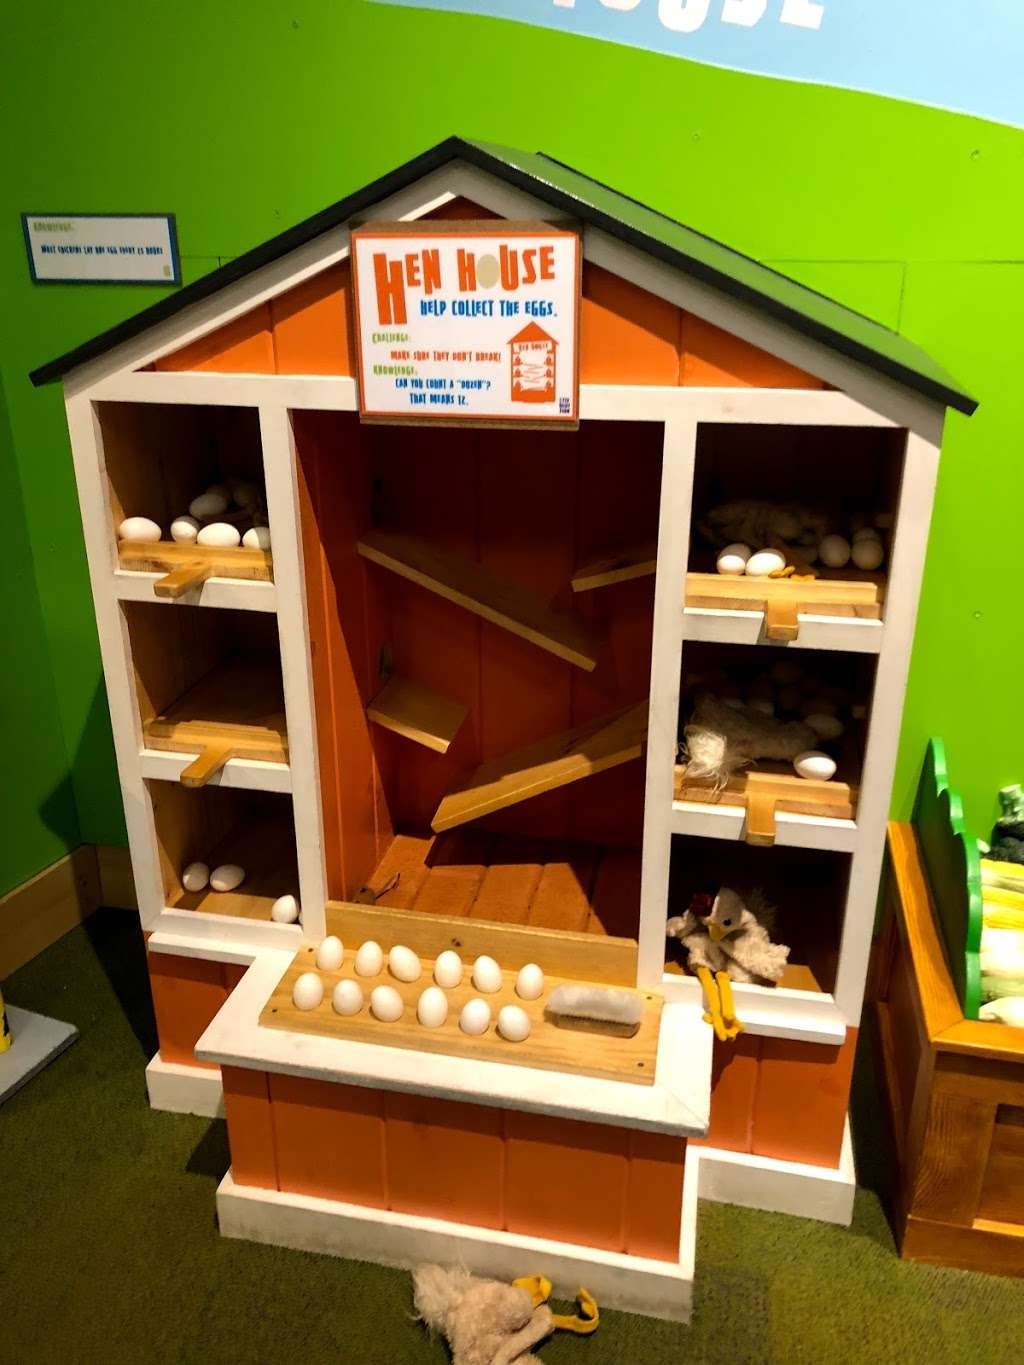 Hands-on House, Childrens Museum of Lancaster - museum  | Photo 8 of 10 | Address: 721 Landis Valley Rd, Lancaster, PA 17601, USA | Phone: (717) 569-5437